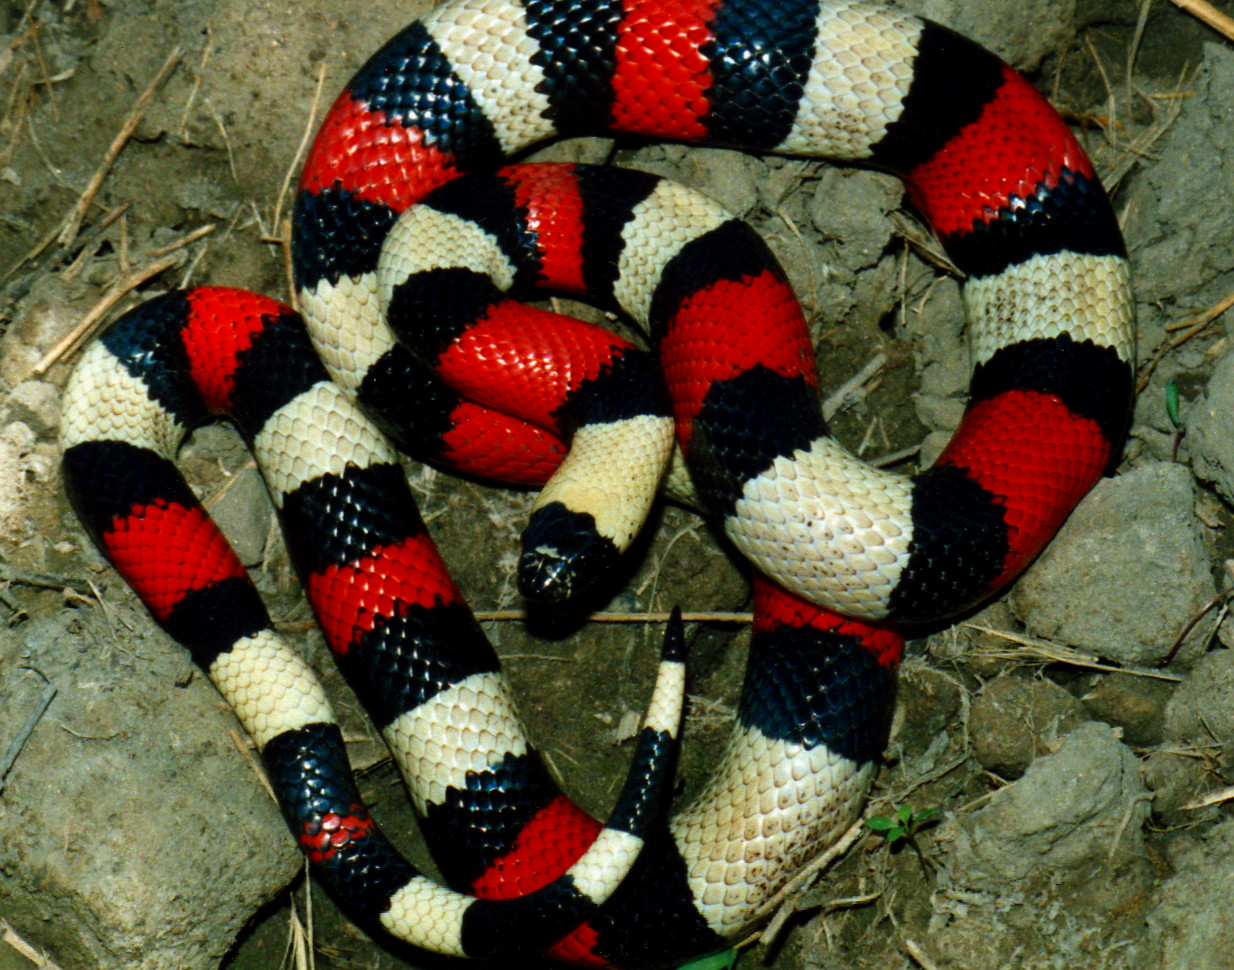 MILKSNAKES - WORLD PITUOPHIS WEB PAGE BY PATRICK H  BRIGGS